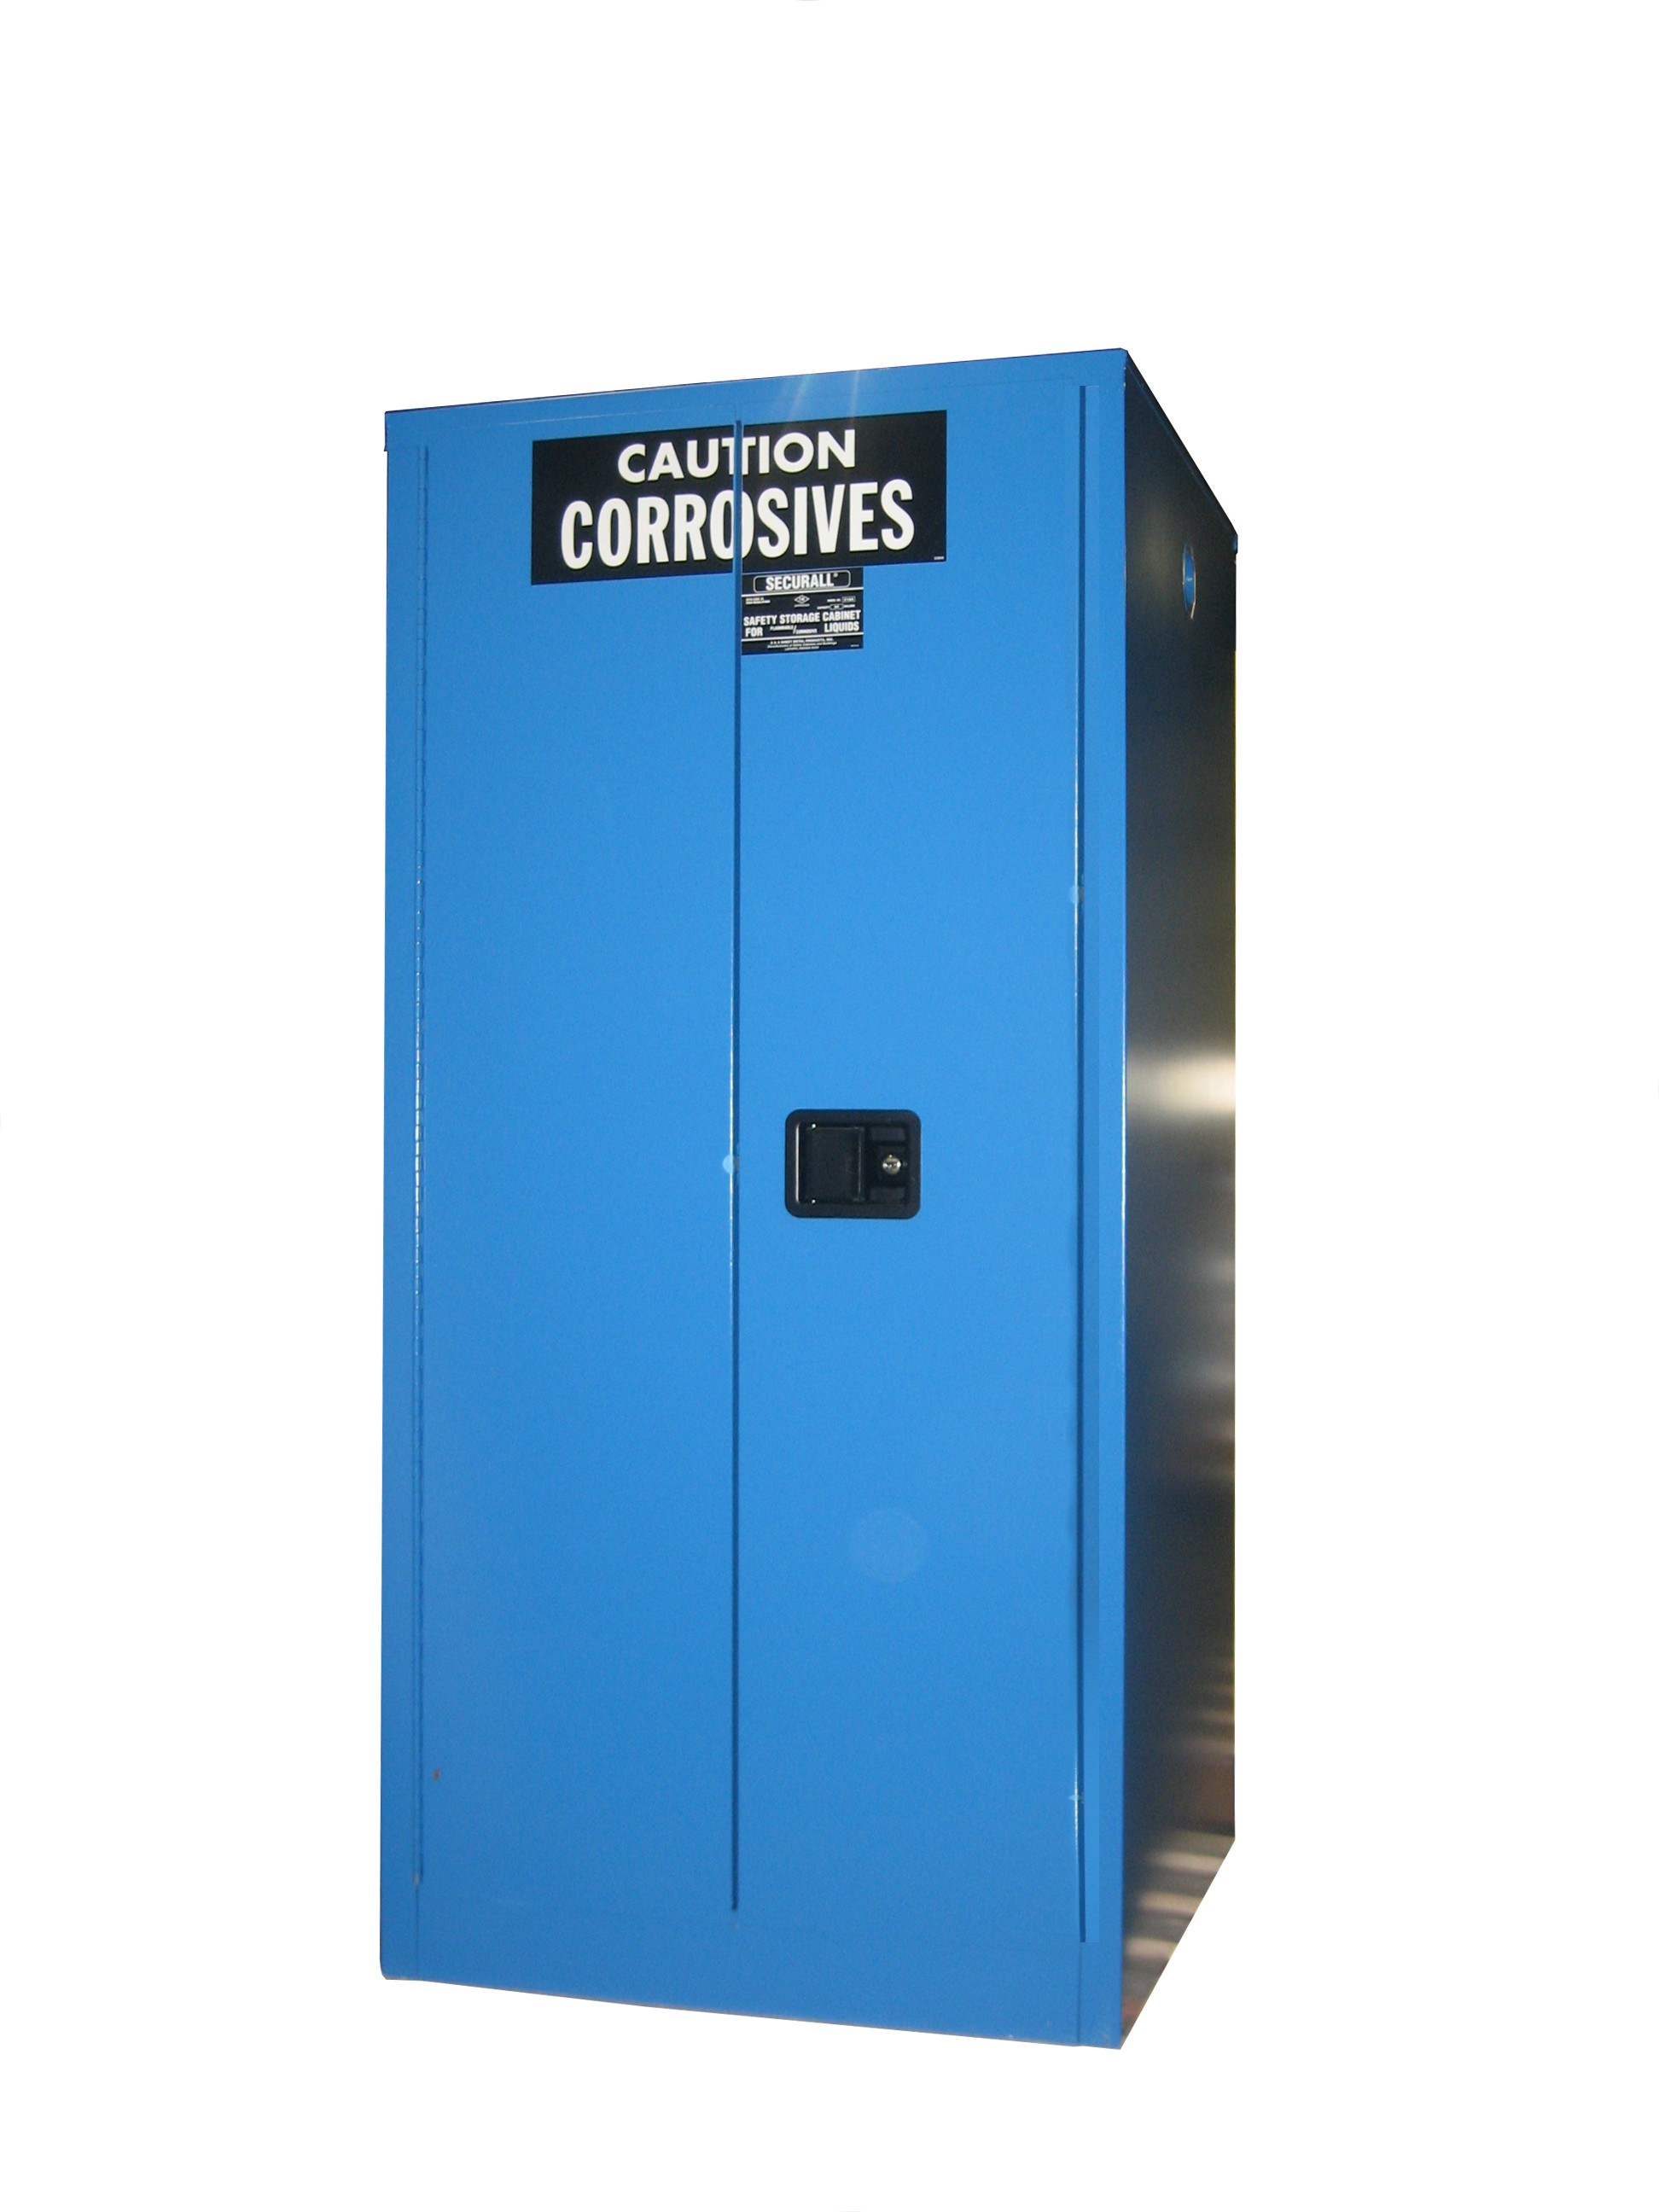 C260 - Acid/Corrosive Storage Cabinet - 60 Gal. Self-Close, Self-Latch Sliding Door